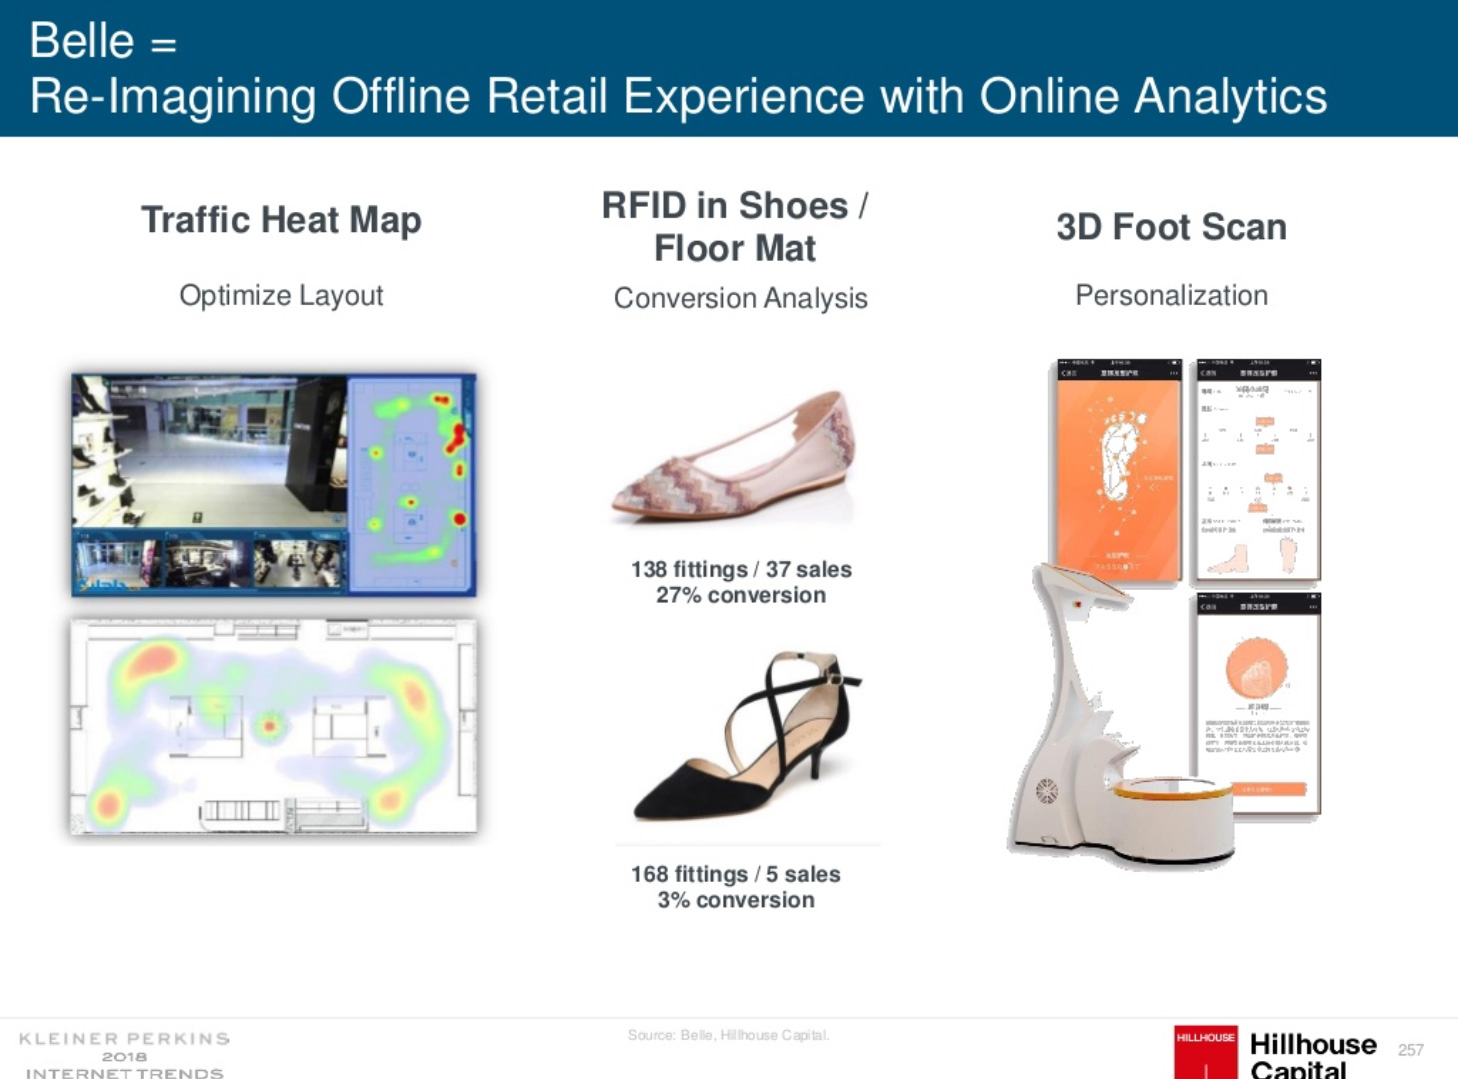 China use heatmap, rfid and 3d foot scan to track retail